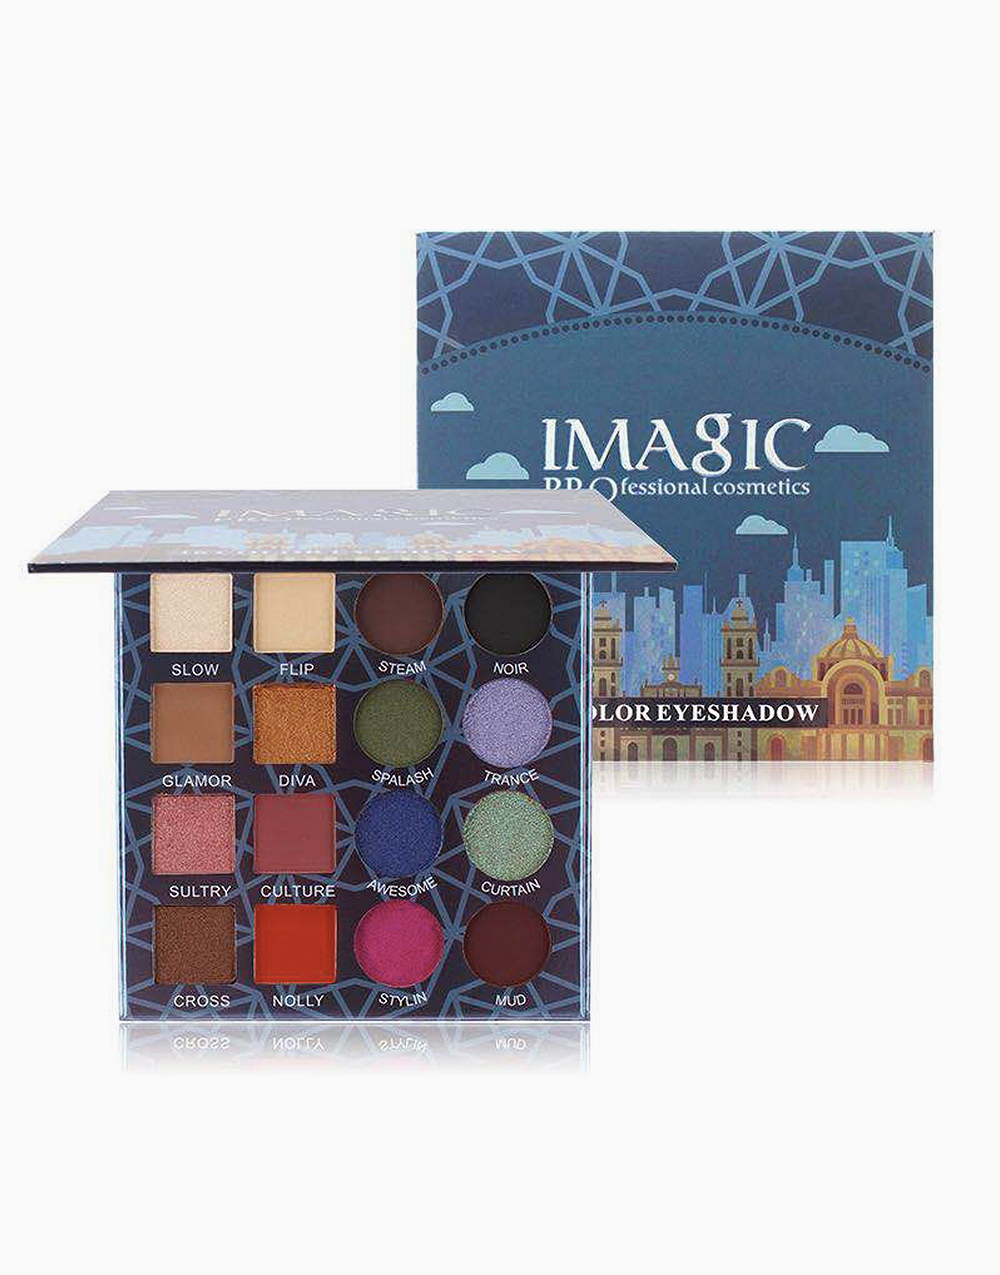 16 Color City Eyeshadow Palette by Imagic